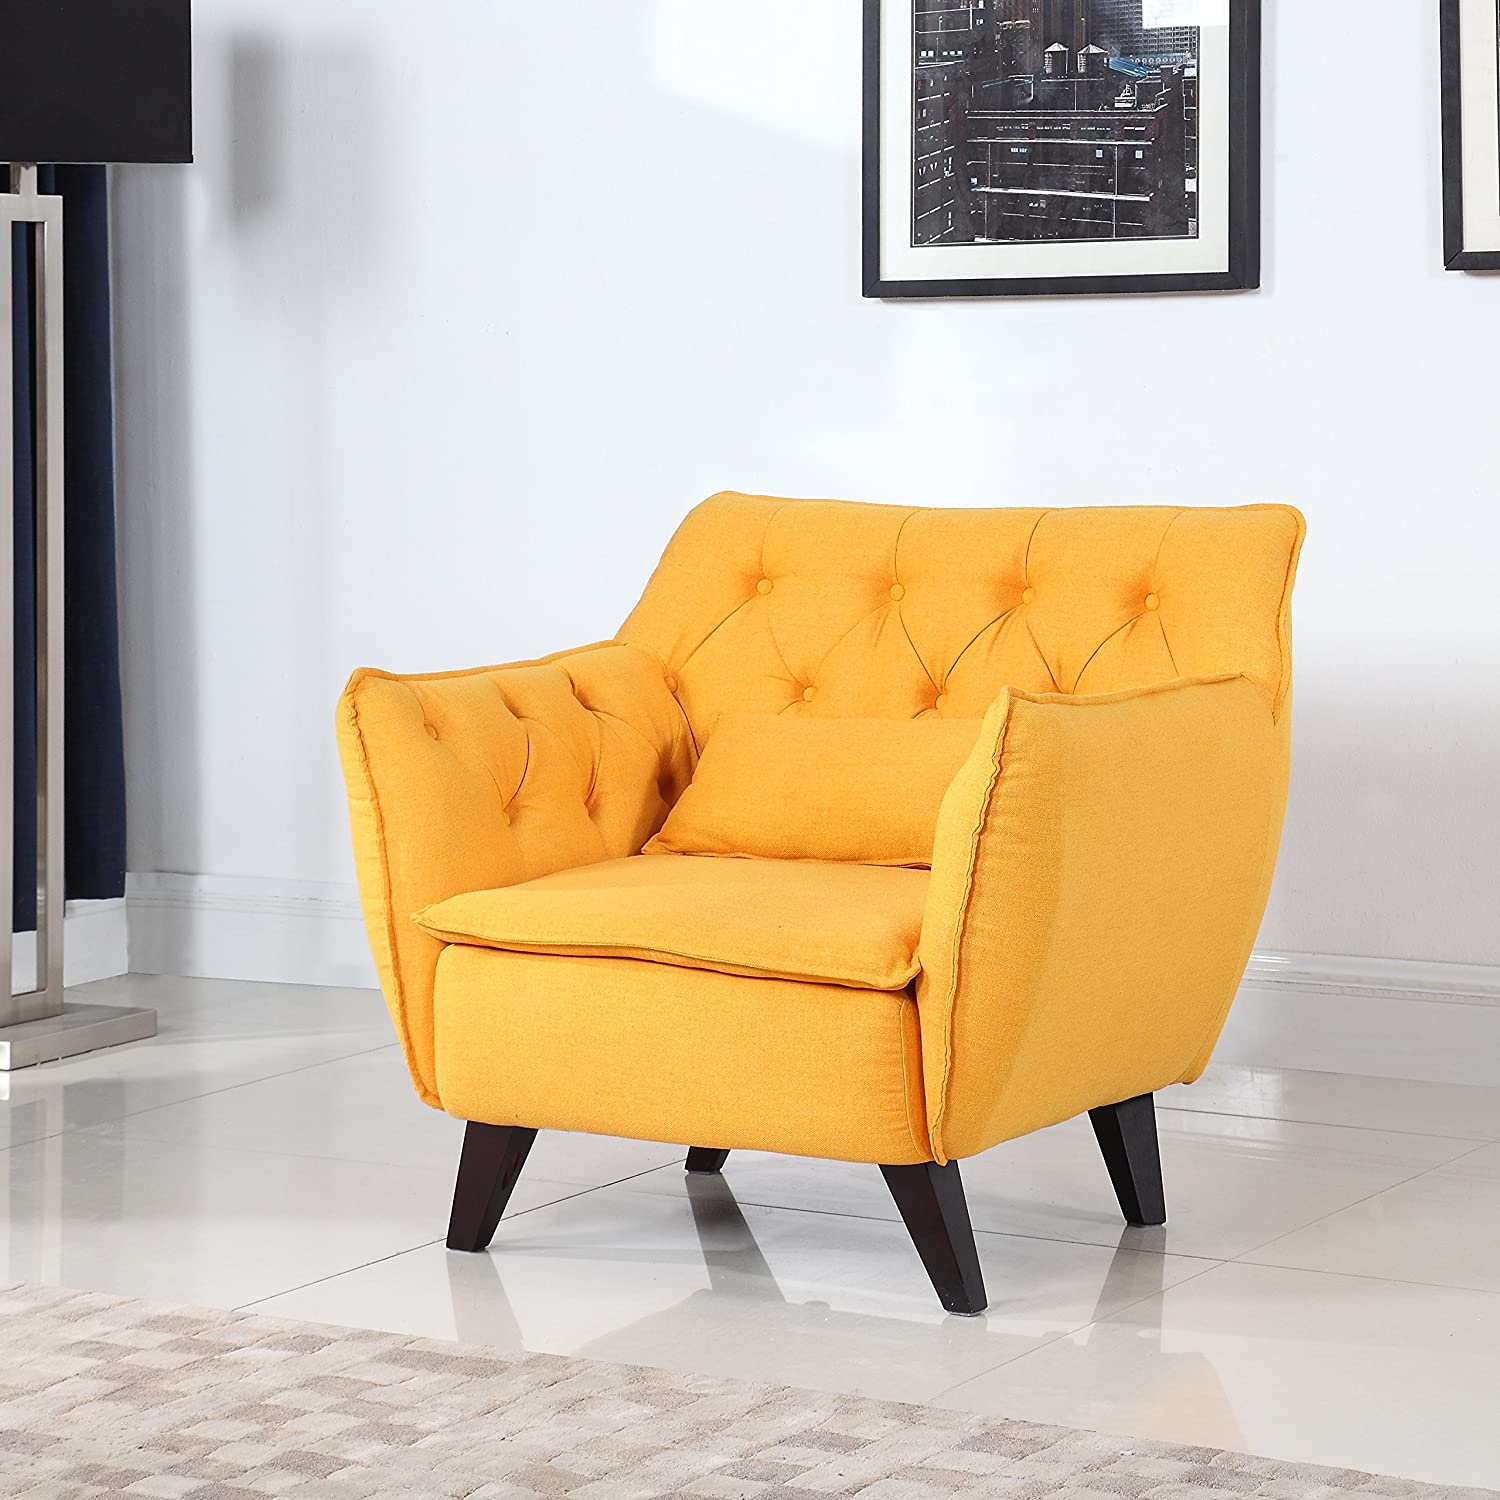 Mid Century Modern Tufted Linen Fabric Living Room Accent Chair (Yellow)